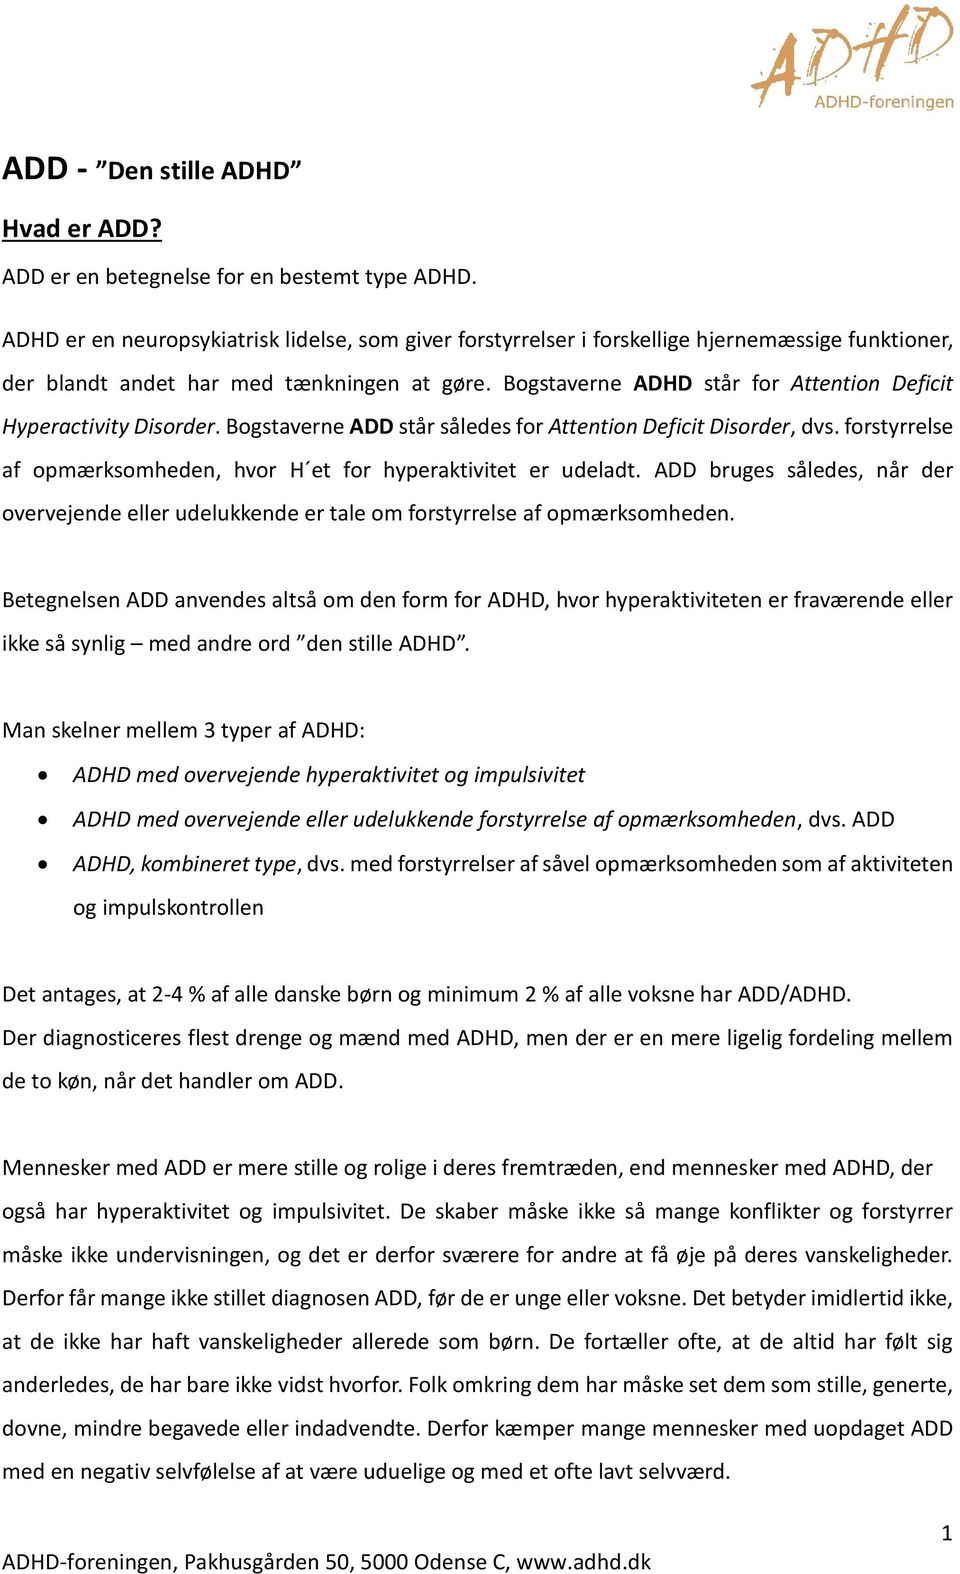 Bogstaverne ADHD står for Attention Deficit Hyperactivity Disorder. Bogstaverne ADD står således for Attention Deficit Disorder, dvs.